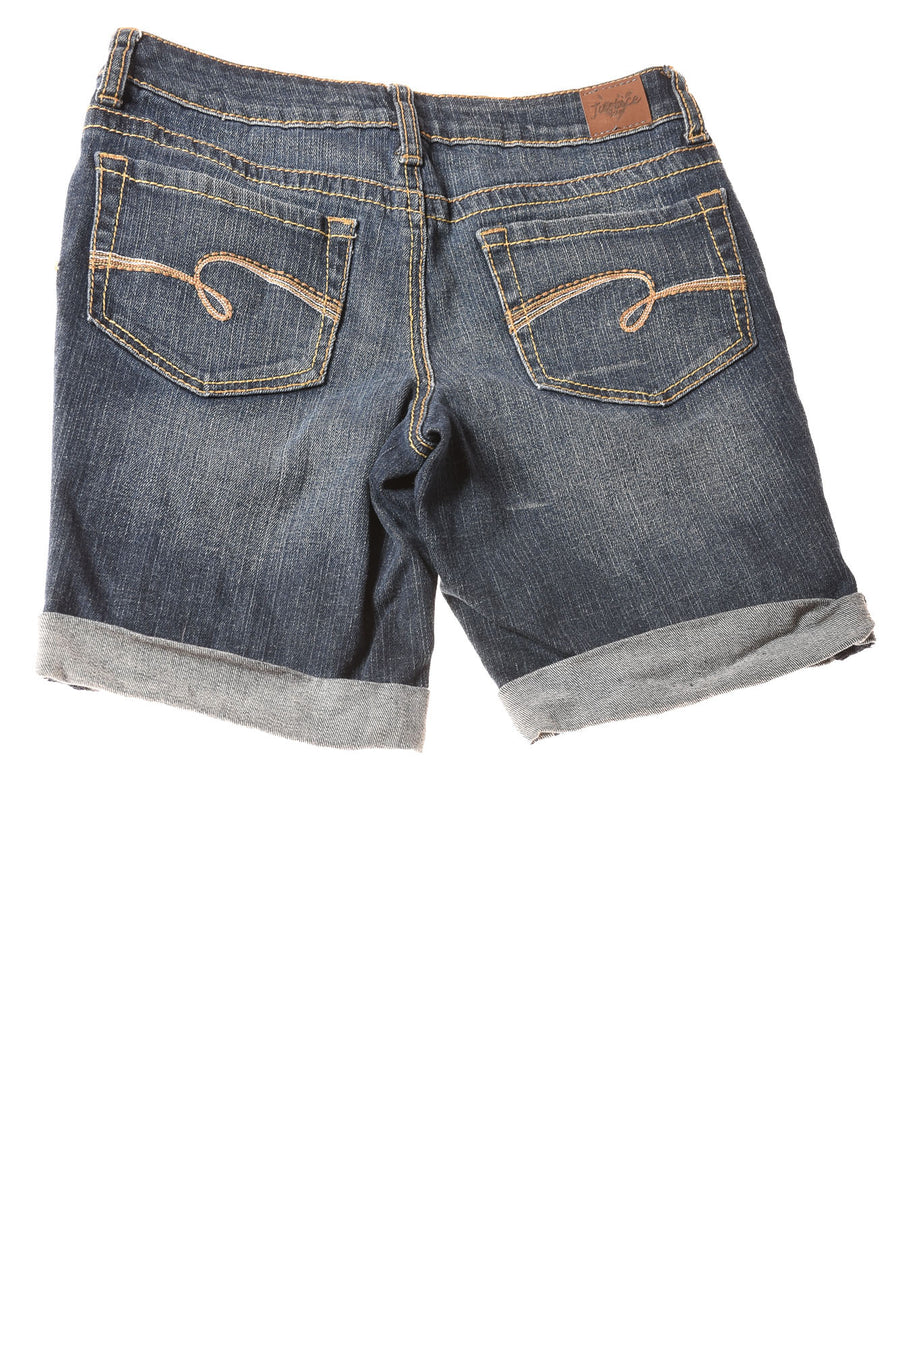 USED Justice Jeans Girl's Shorts  10.5 Blue